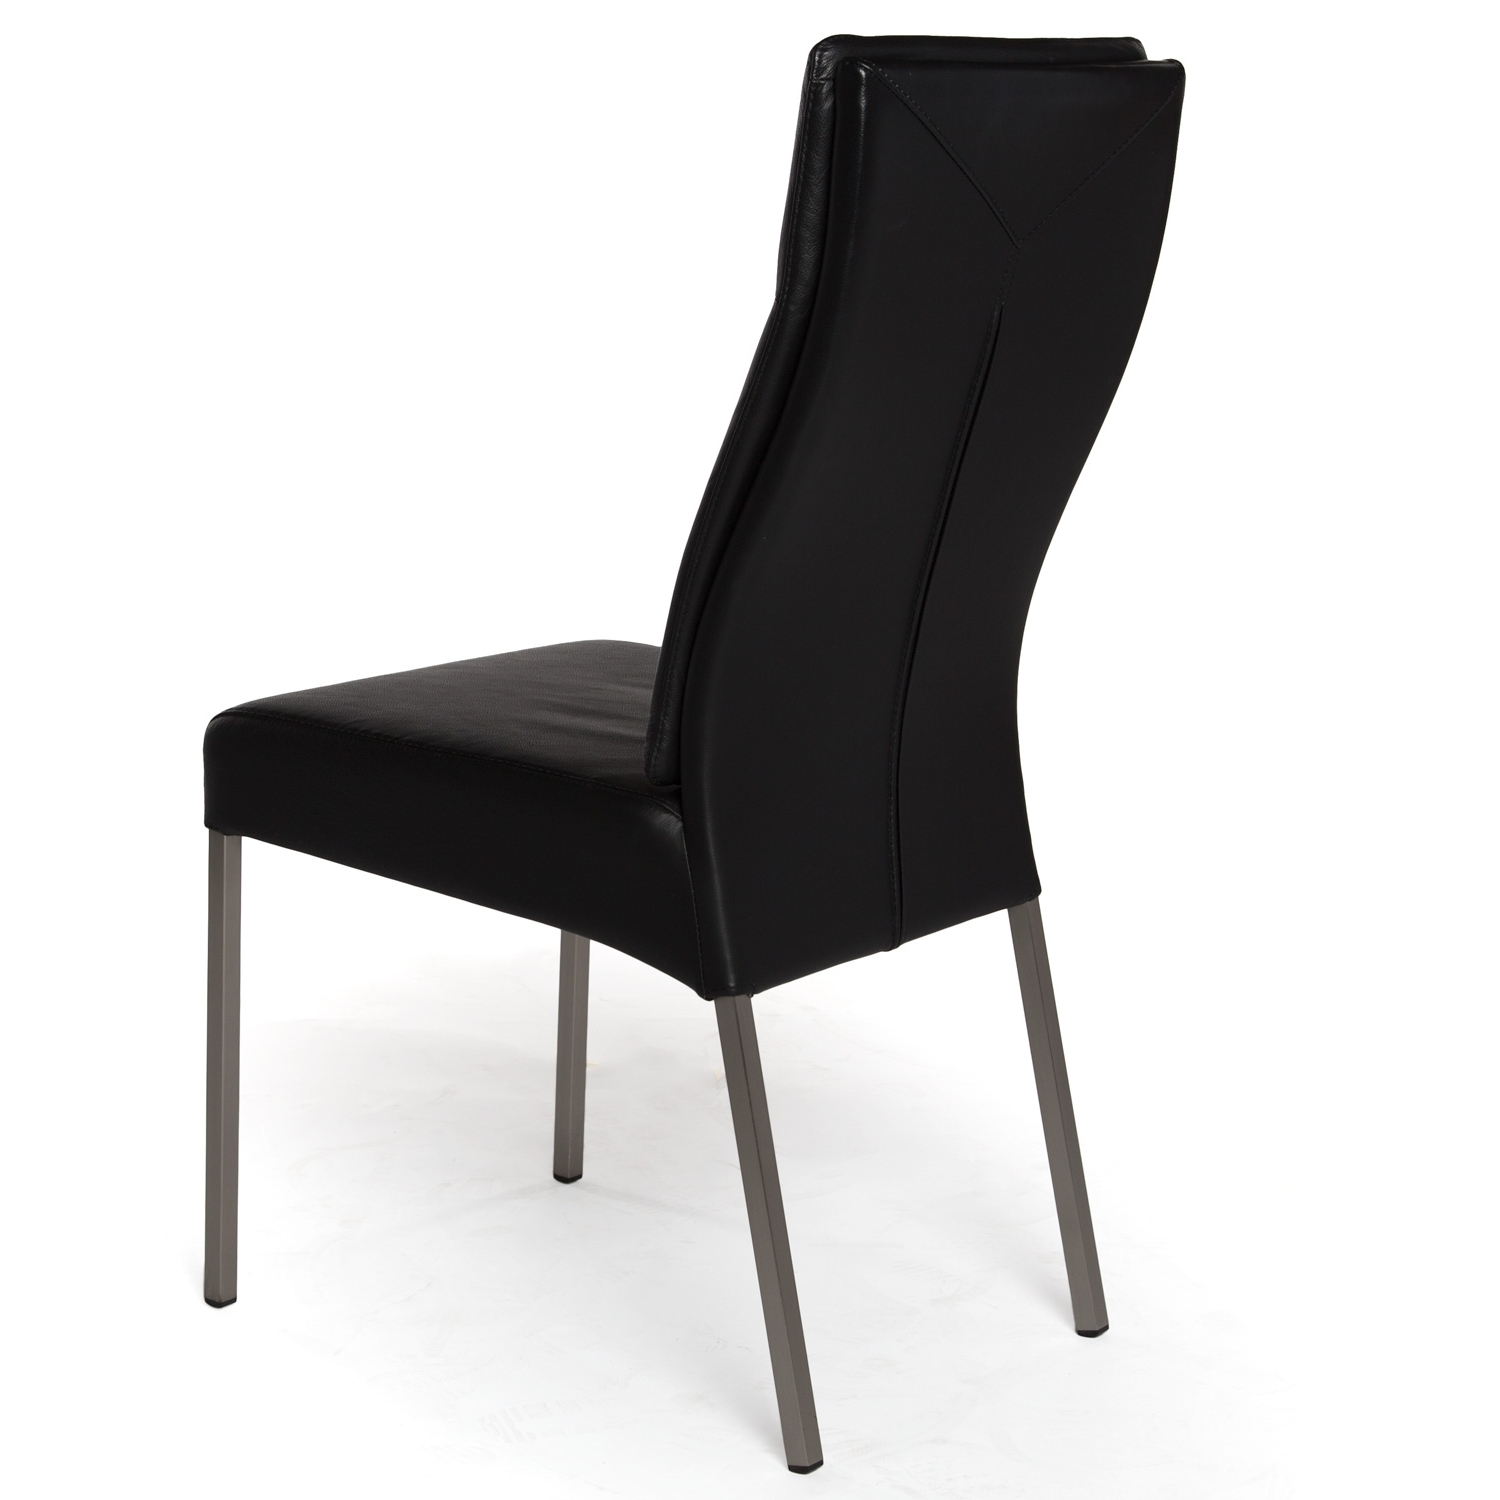 Most Popular Real Leather Dining Chair In Black Inside Leather Dining Chairs (View 17 of 25)